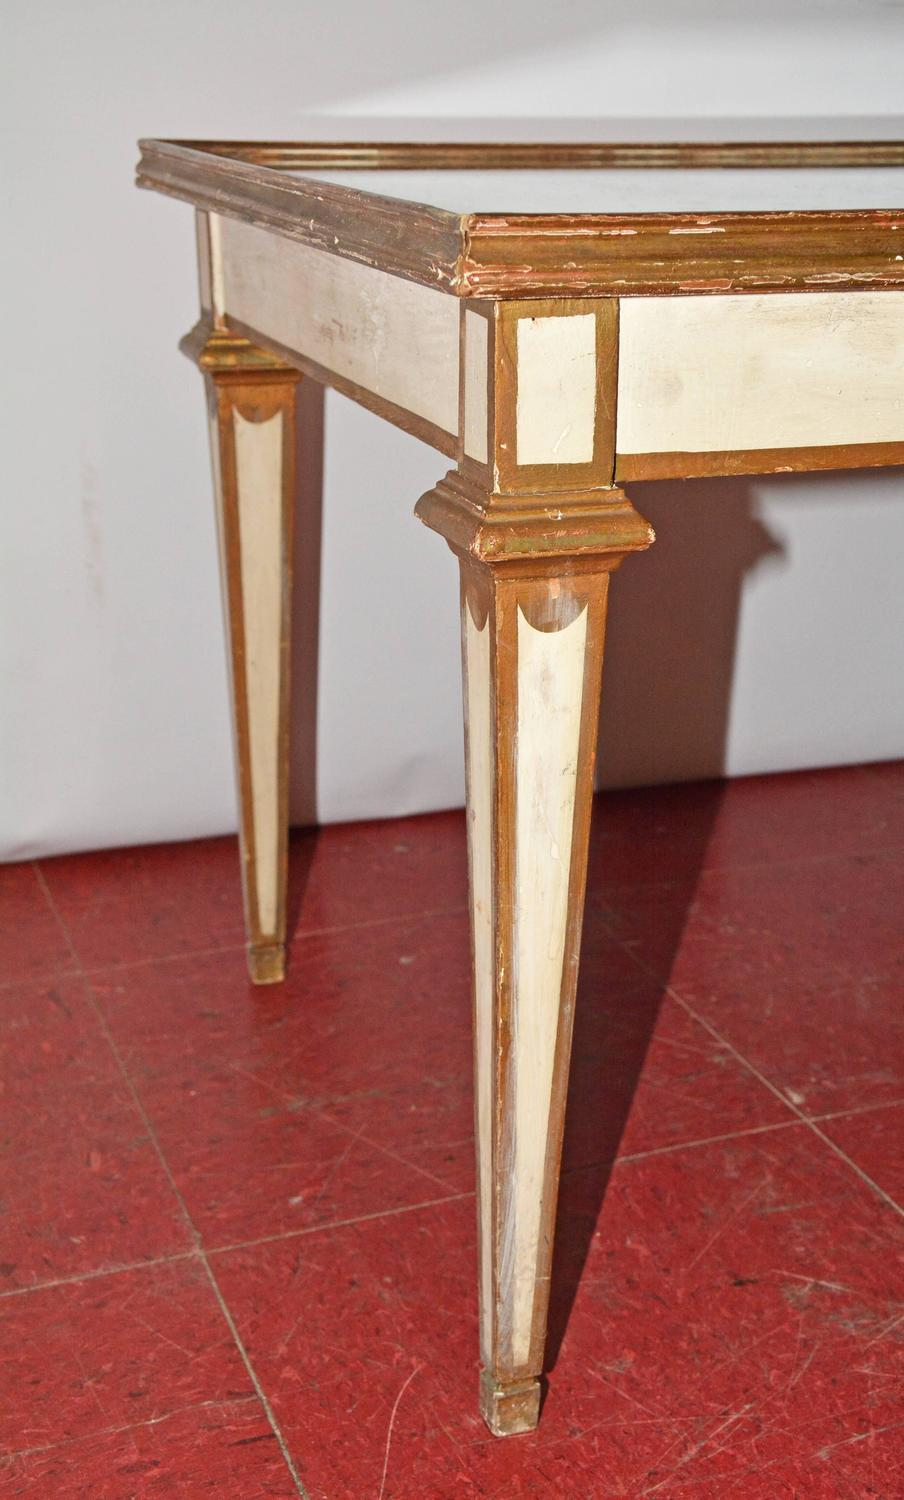 classical moderne mirrored coffee or side table for sale at 1stdibs. Black Bedroom Furniture Sets. Home Design Ideas